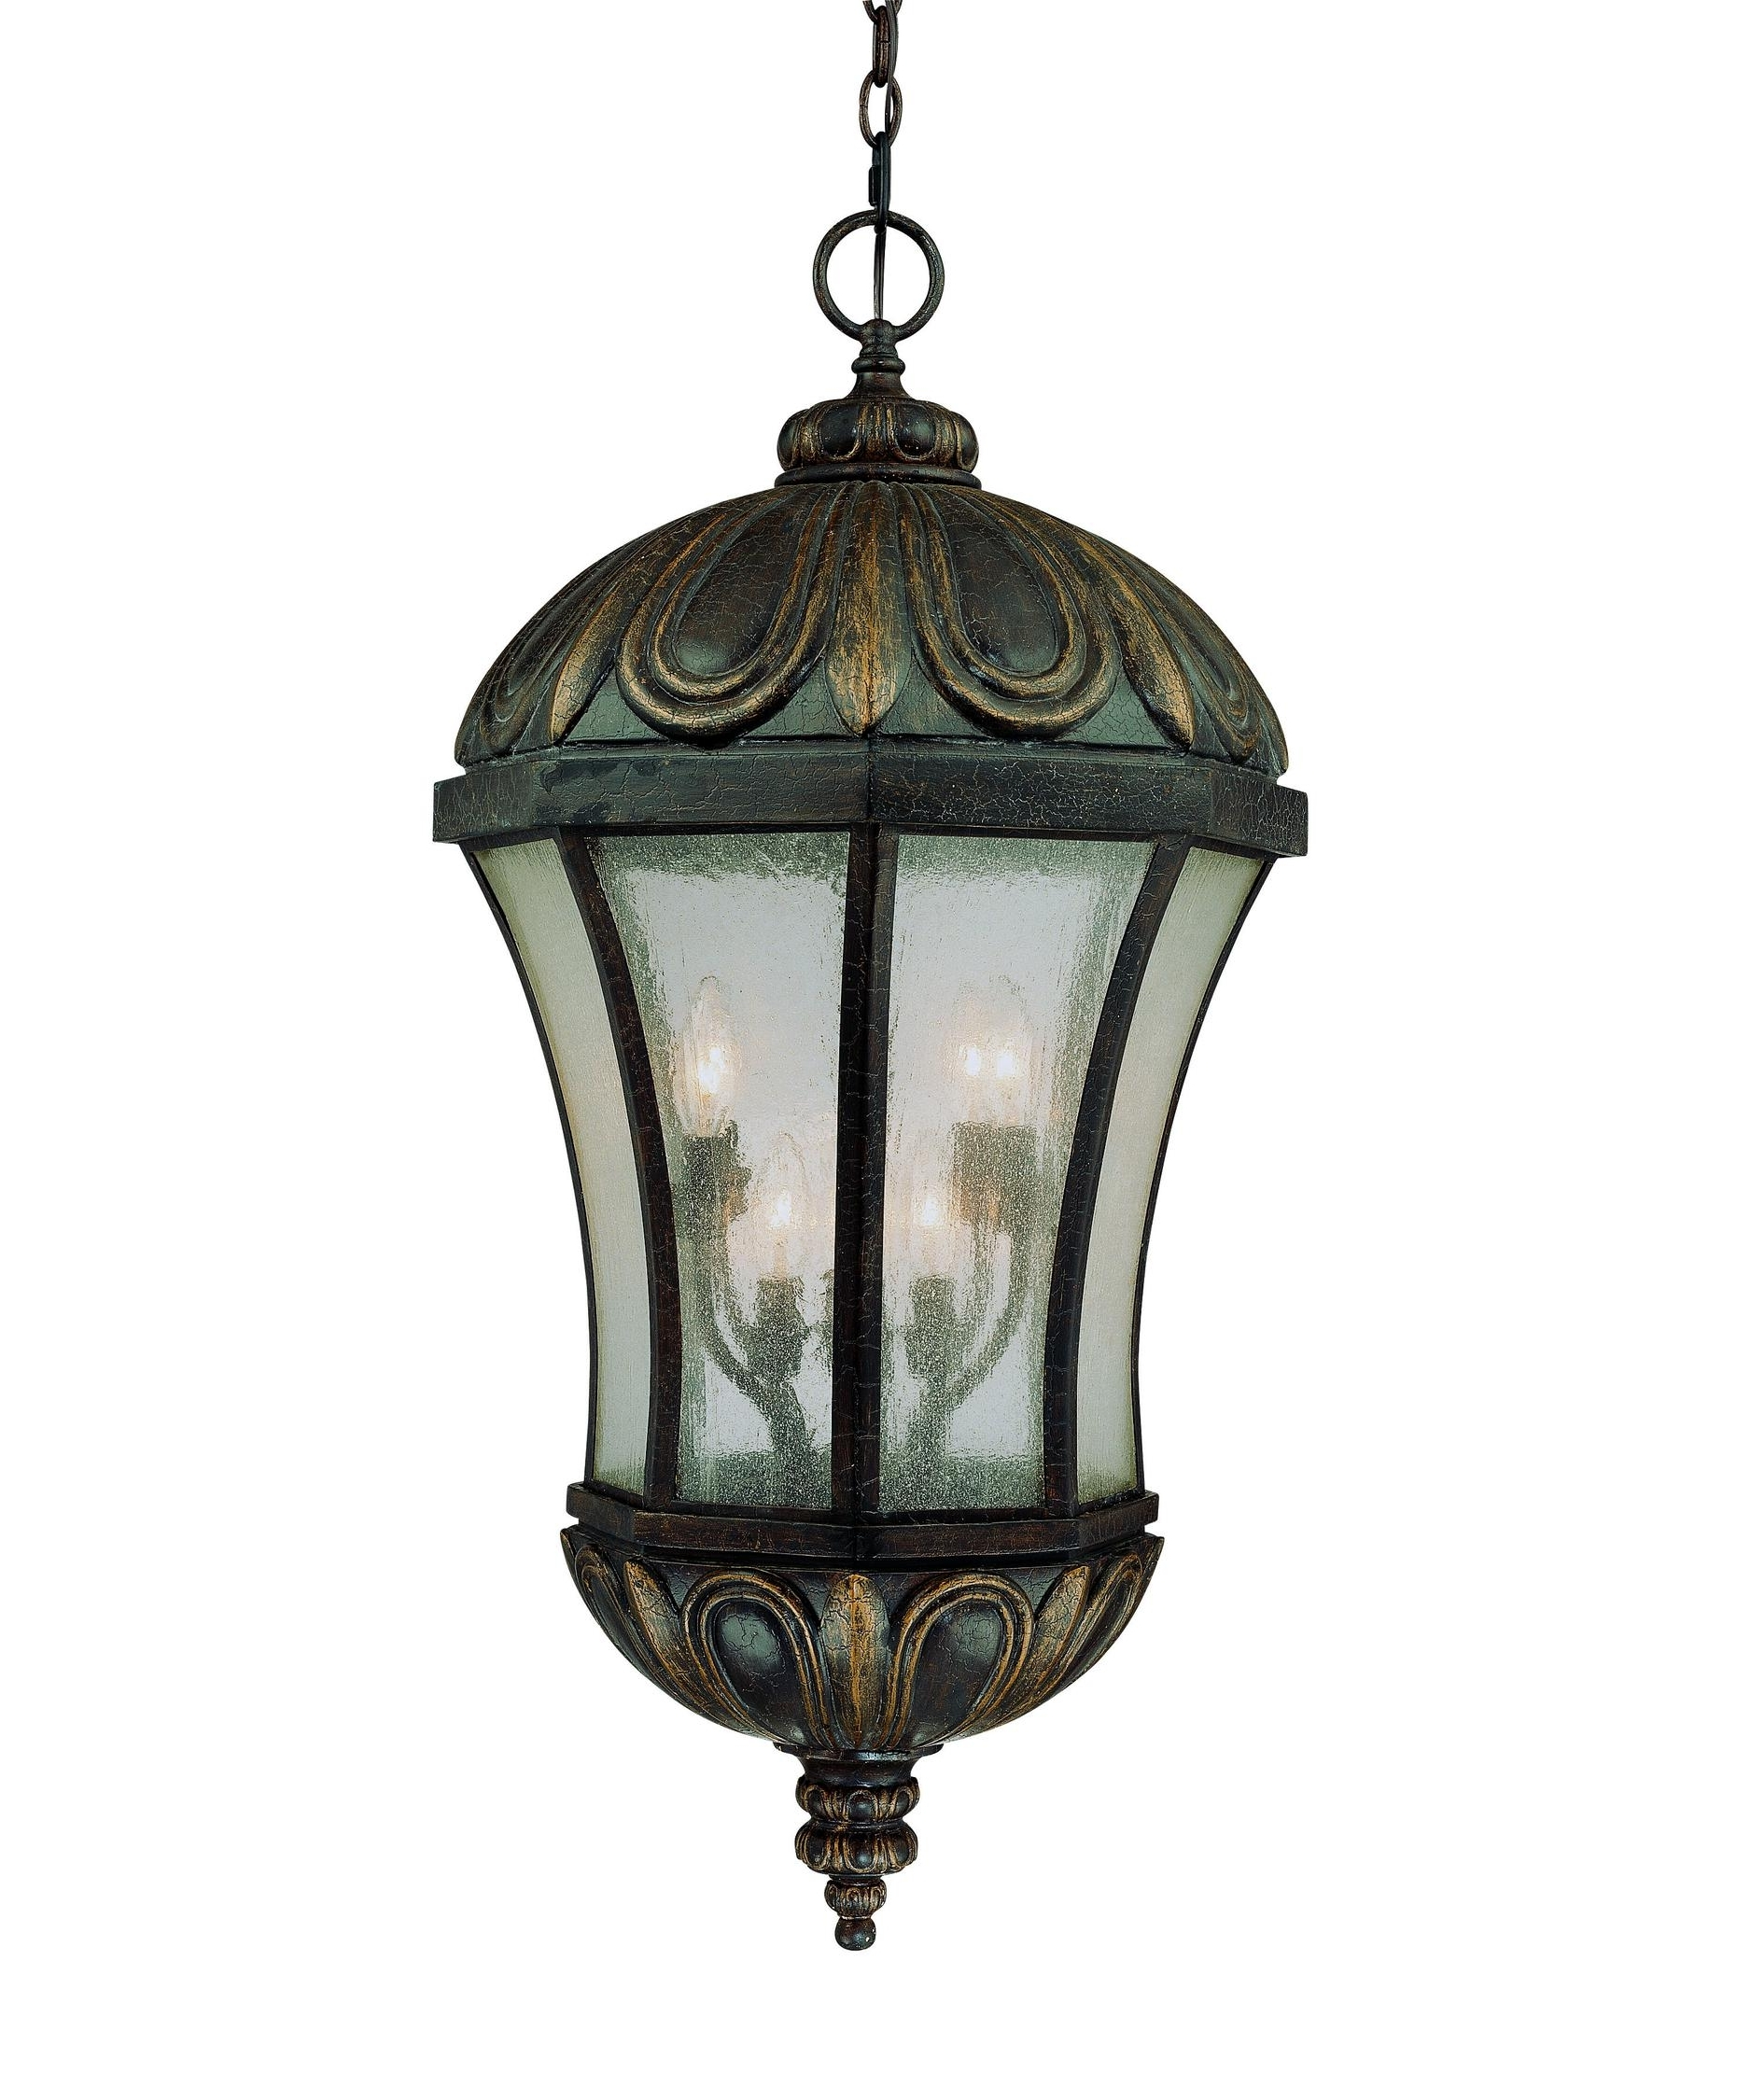 Newest Savoy House 5 2505 306 Ponce De Leon 16 Inch Wide 8 Light Outdoor Intended For Outdoor Ceiling Lights At Amazon (View 5 of 20)